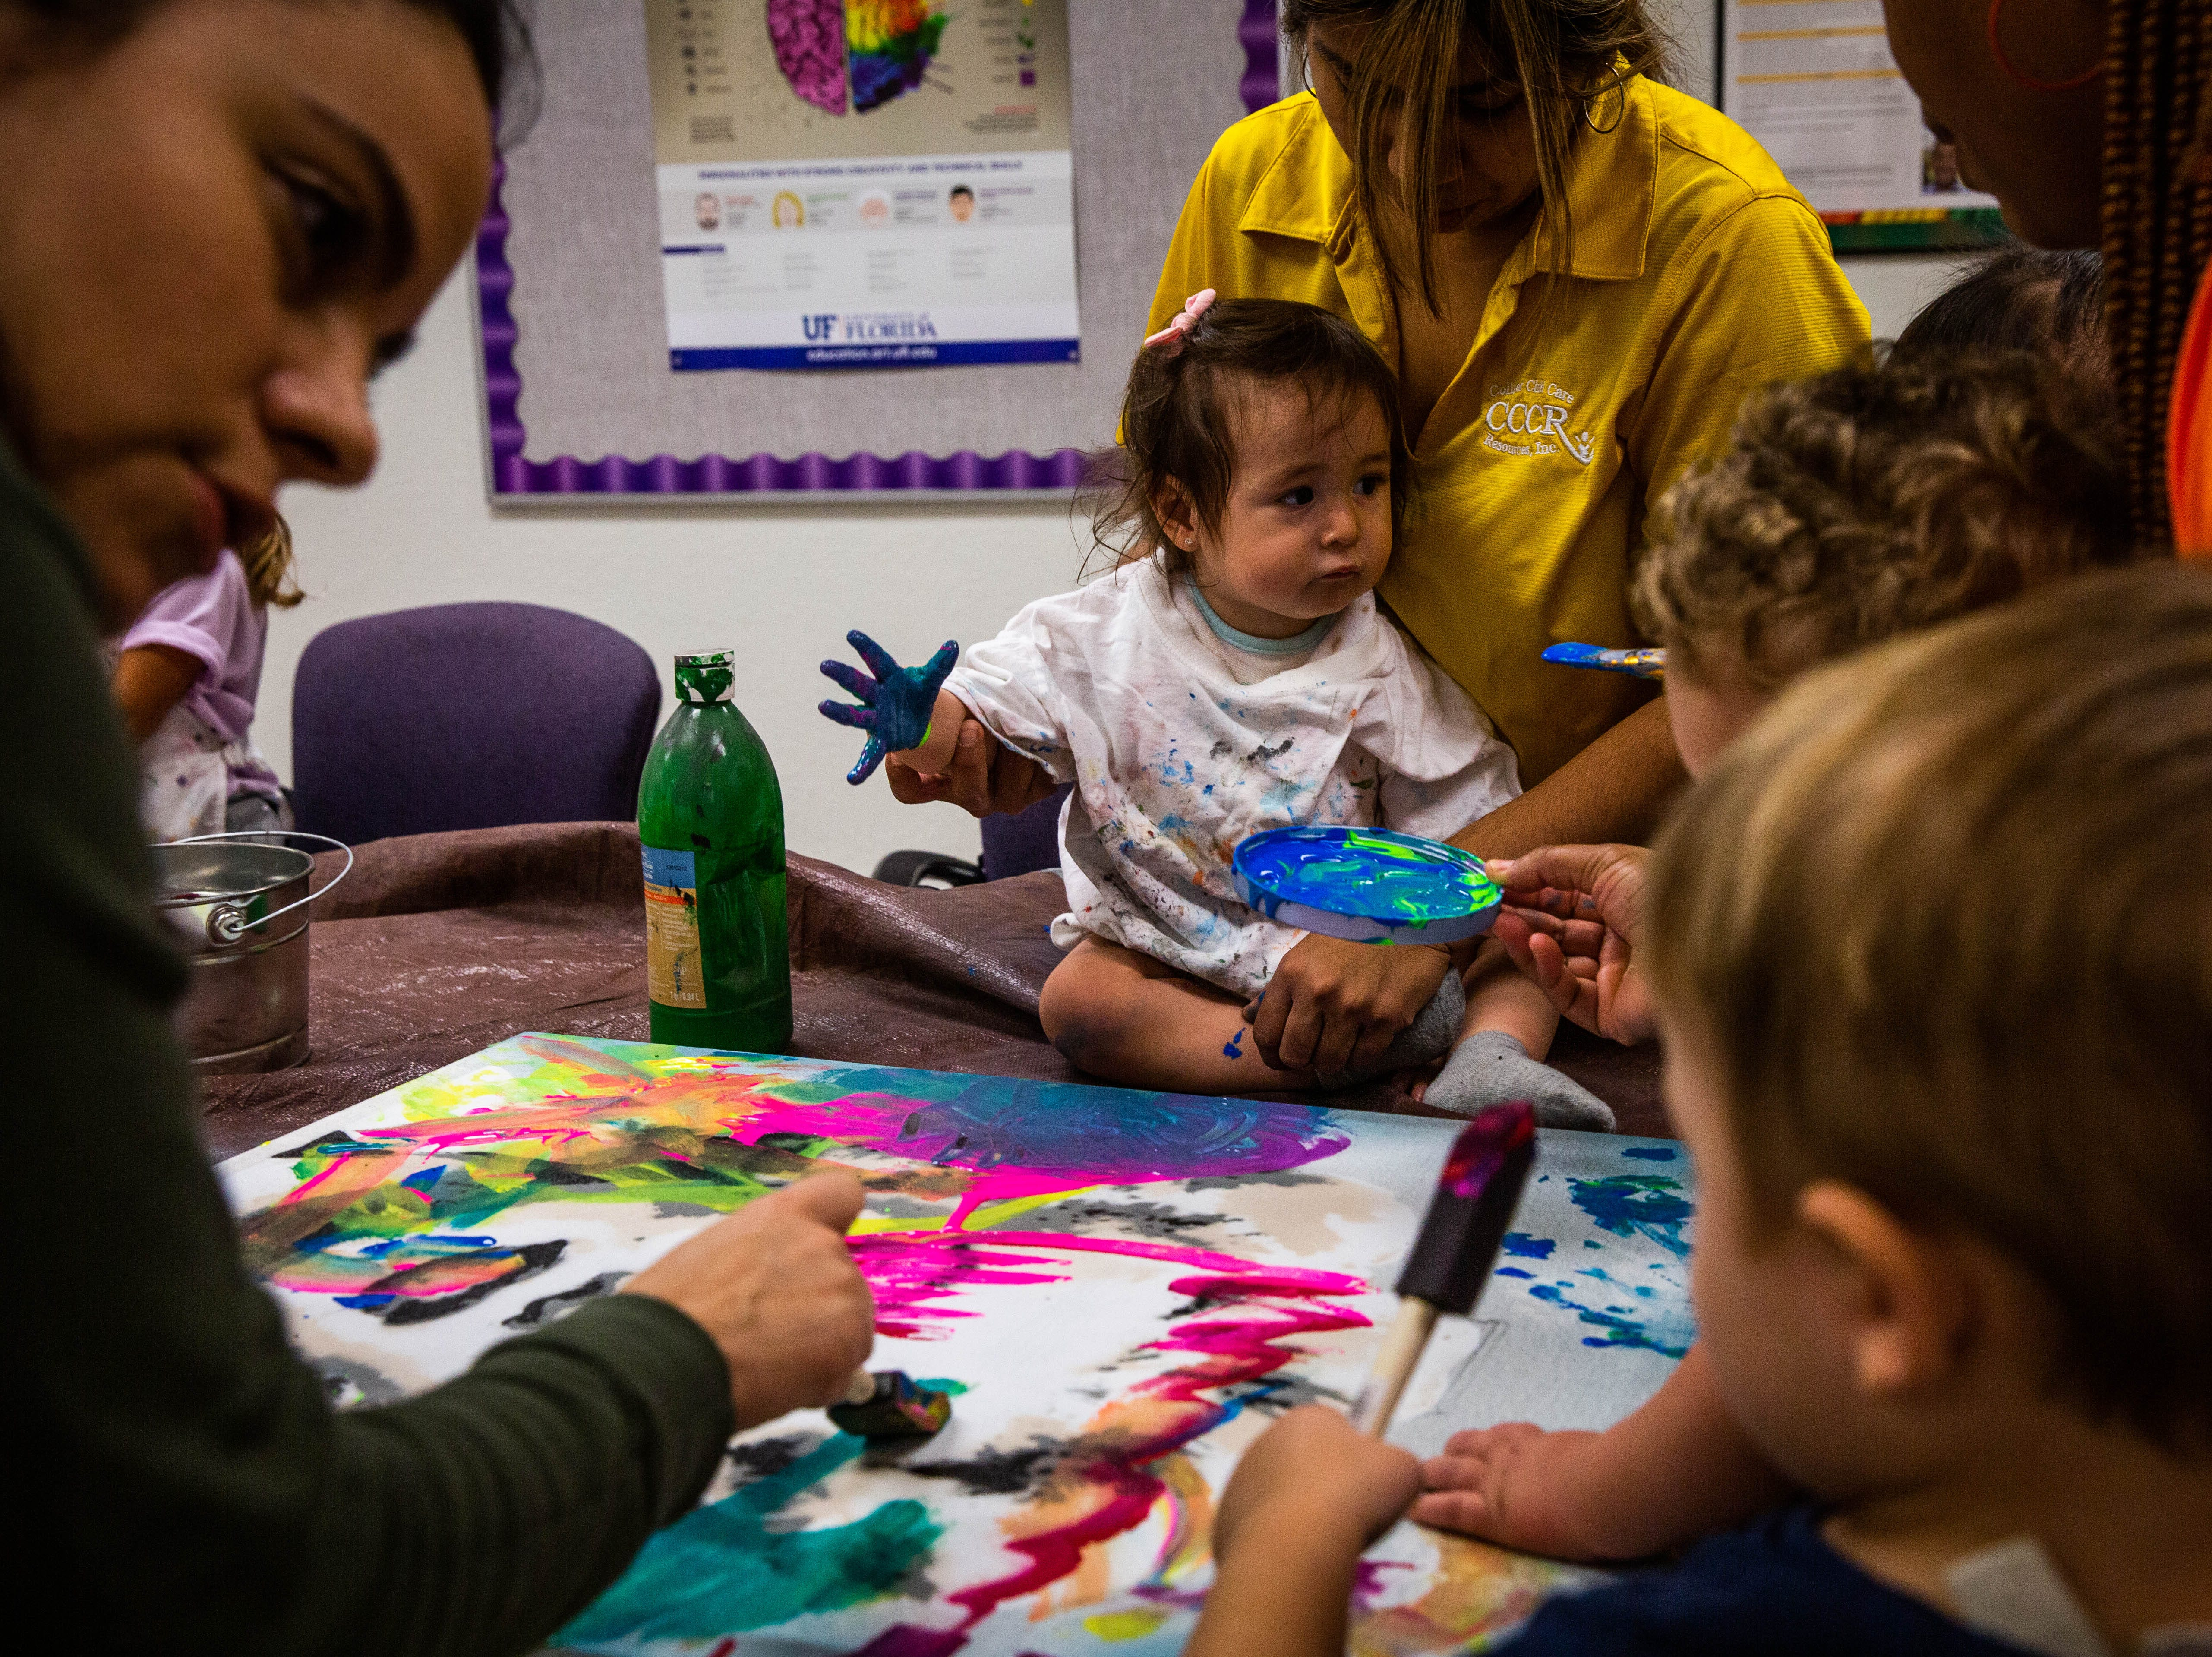 Children in A Step Up, a Collier Child Care Resources Early Childhood Development Center, create art with local artists Marcus and Beatriz Zotter at Immokalee High School on March 20, 2019. The children used paint, both on brushes as well as with their hands, to decorate canvases.